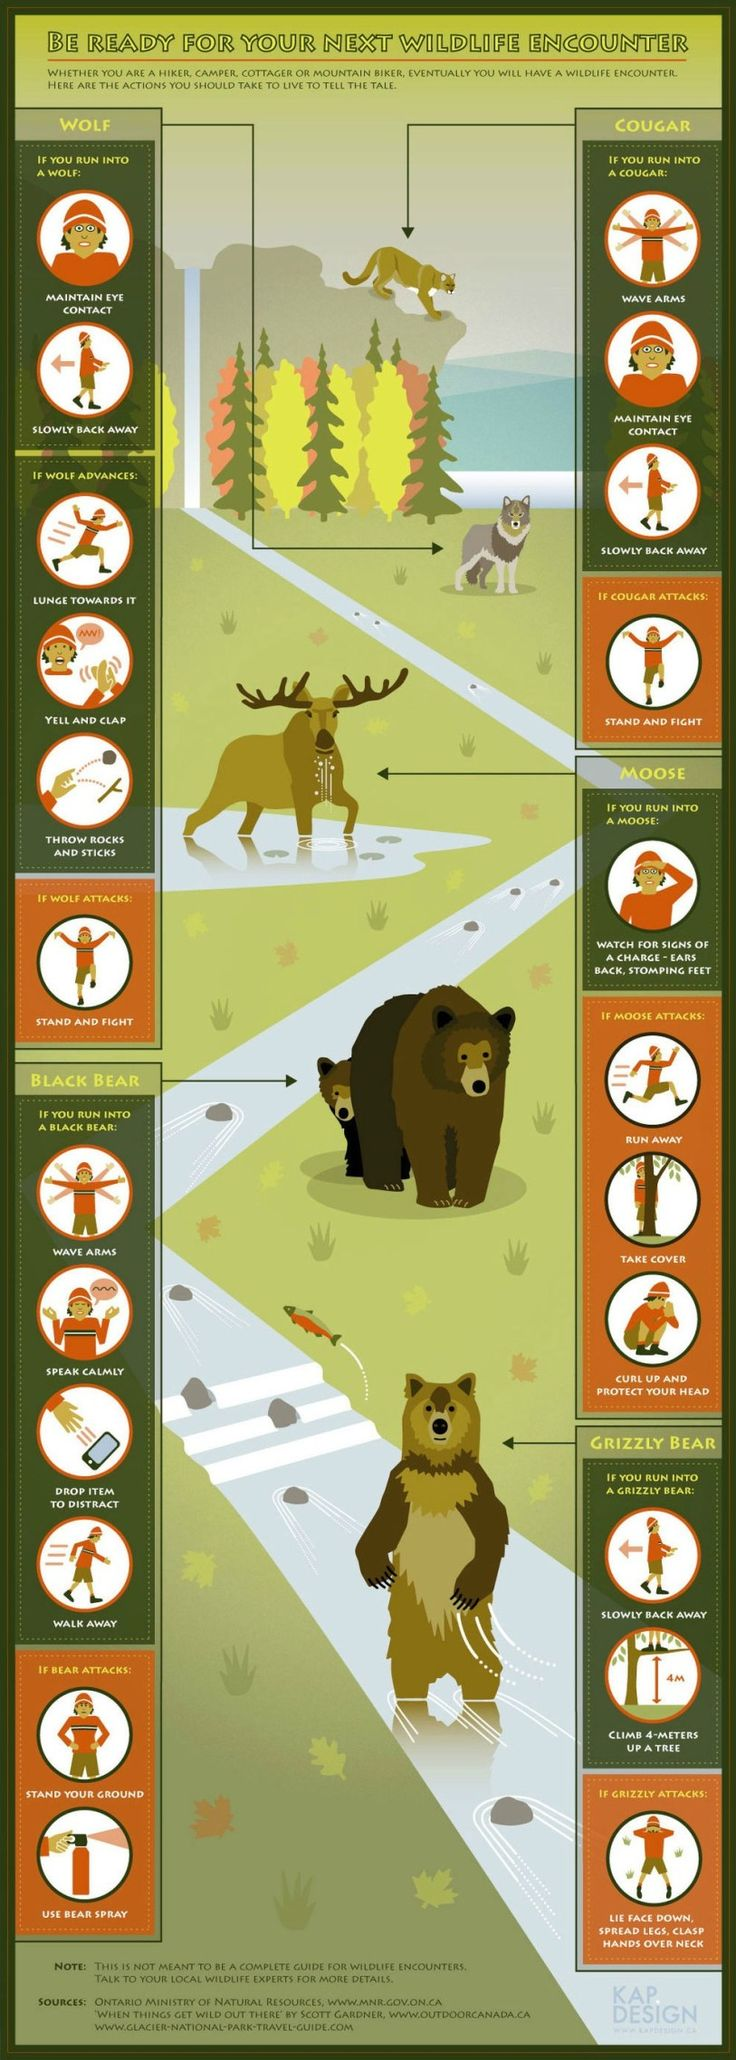 be-ready-for-your-next-wildlife-encounter